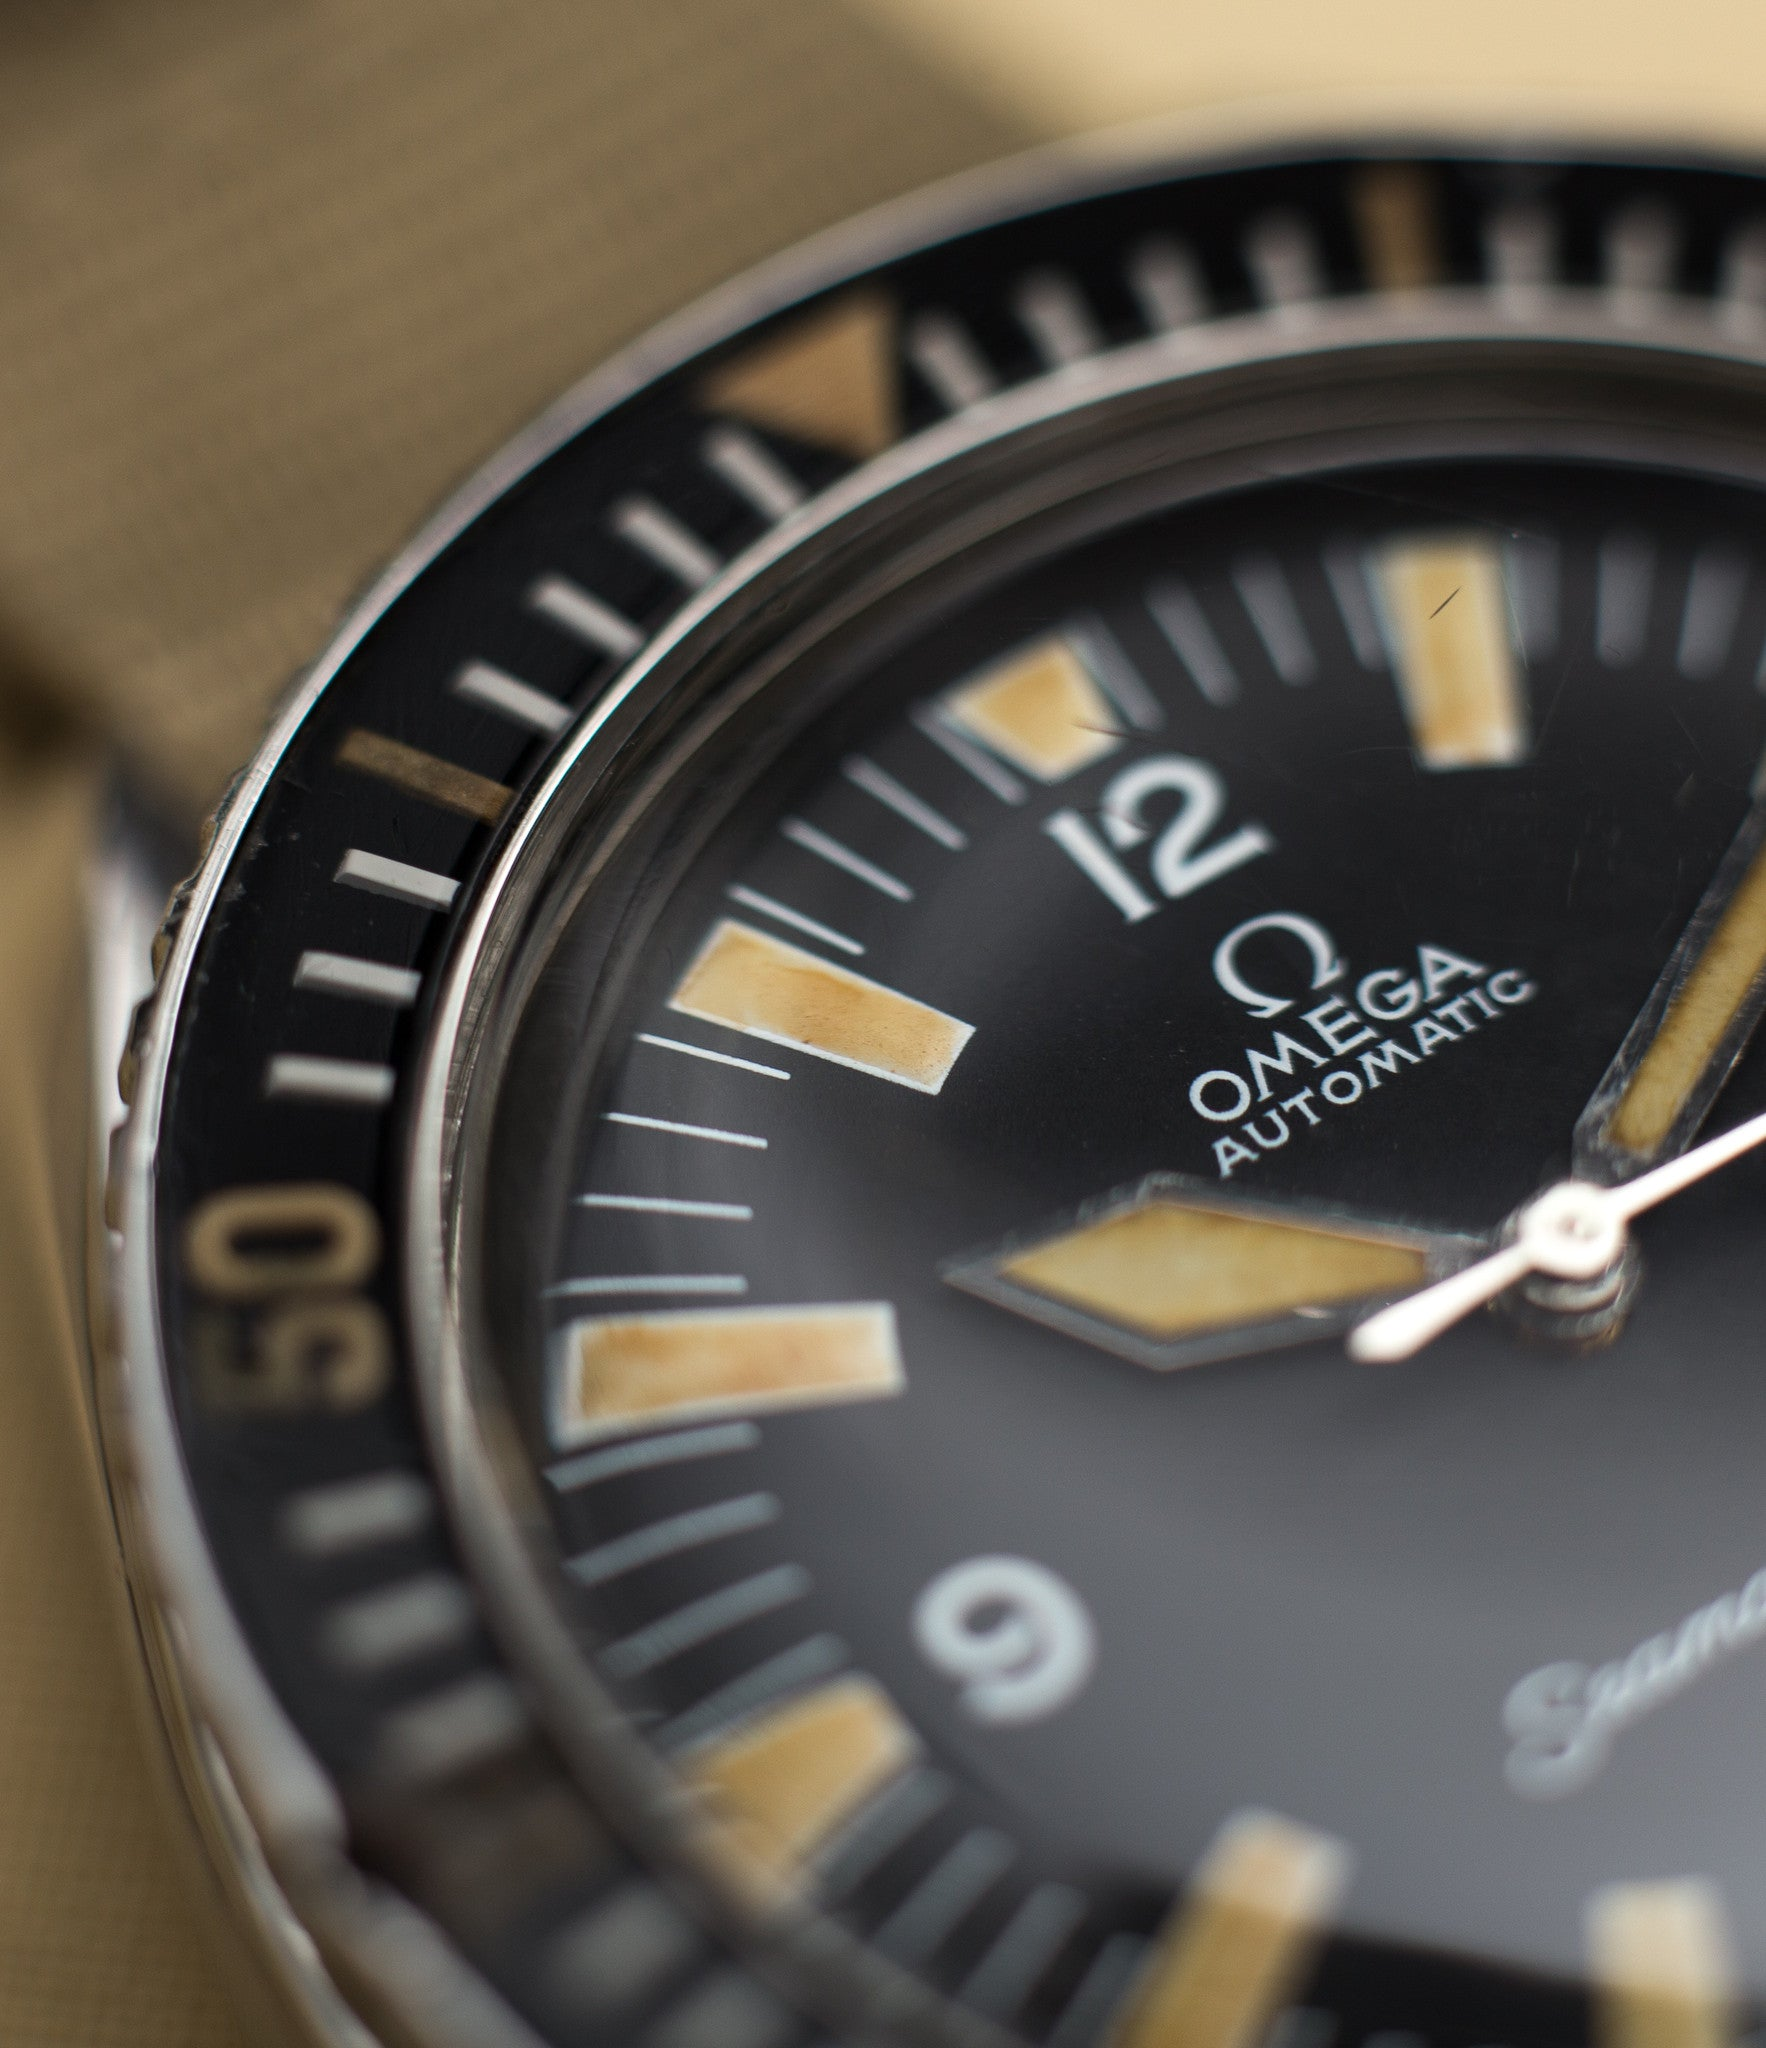 buy Omega Seamaster 300 165024 steel vintage time-only diving watch for sale online at WATCH XCHANGE London